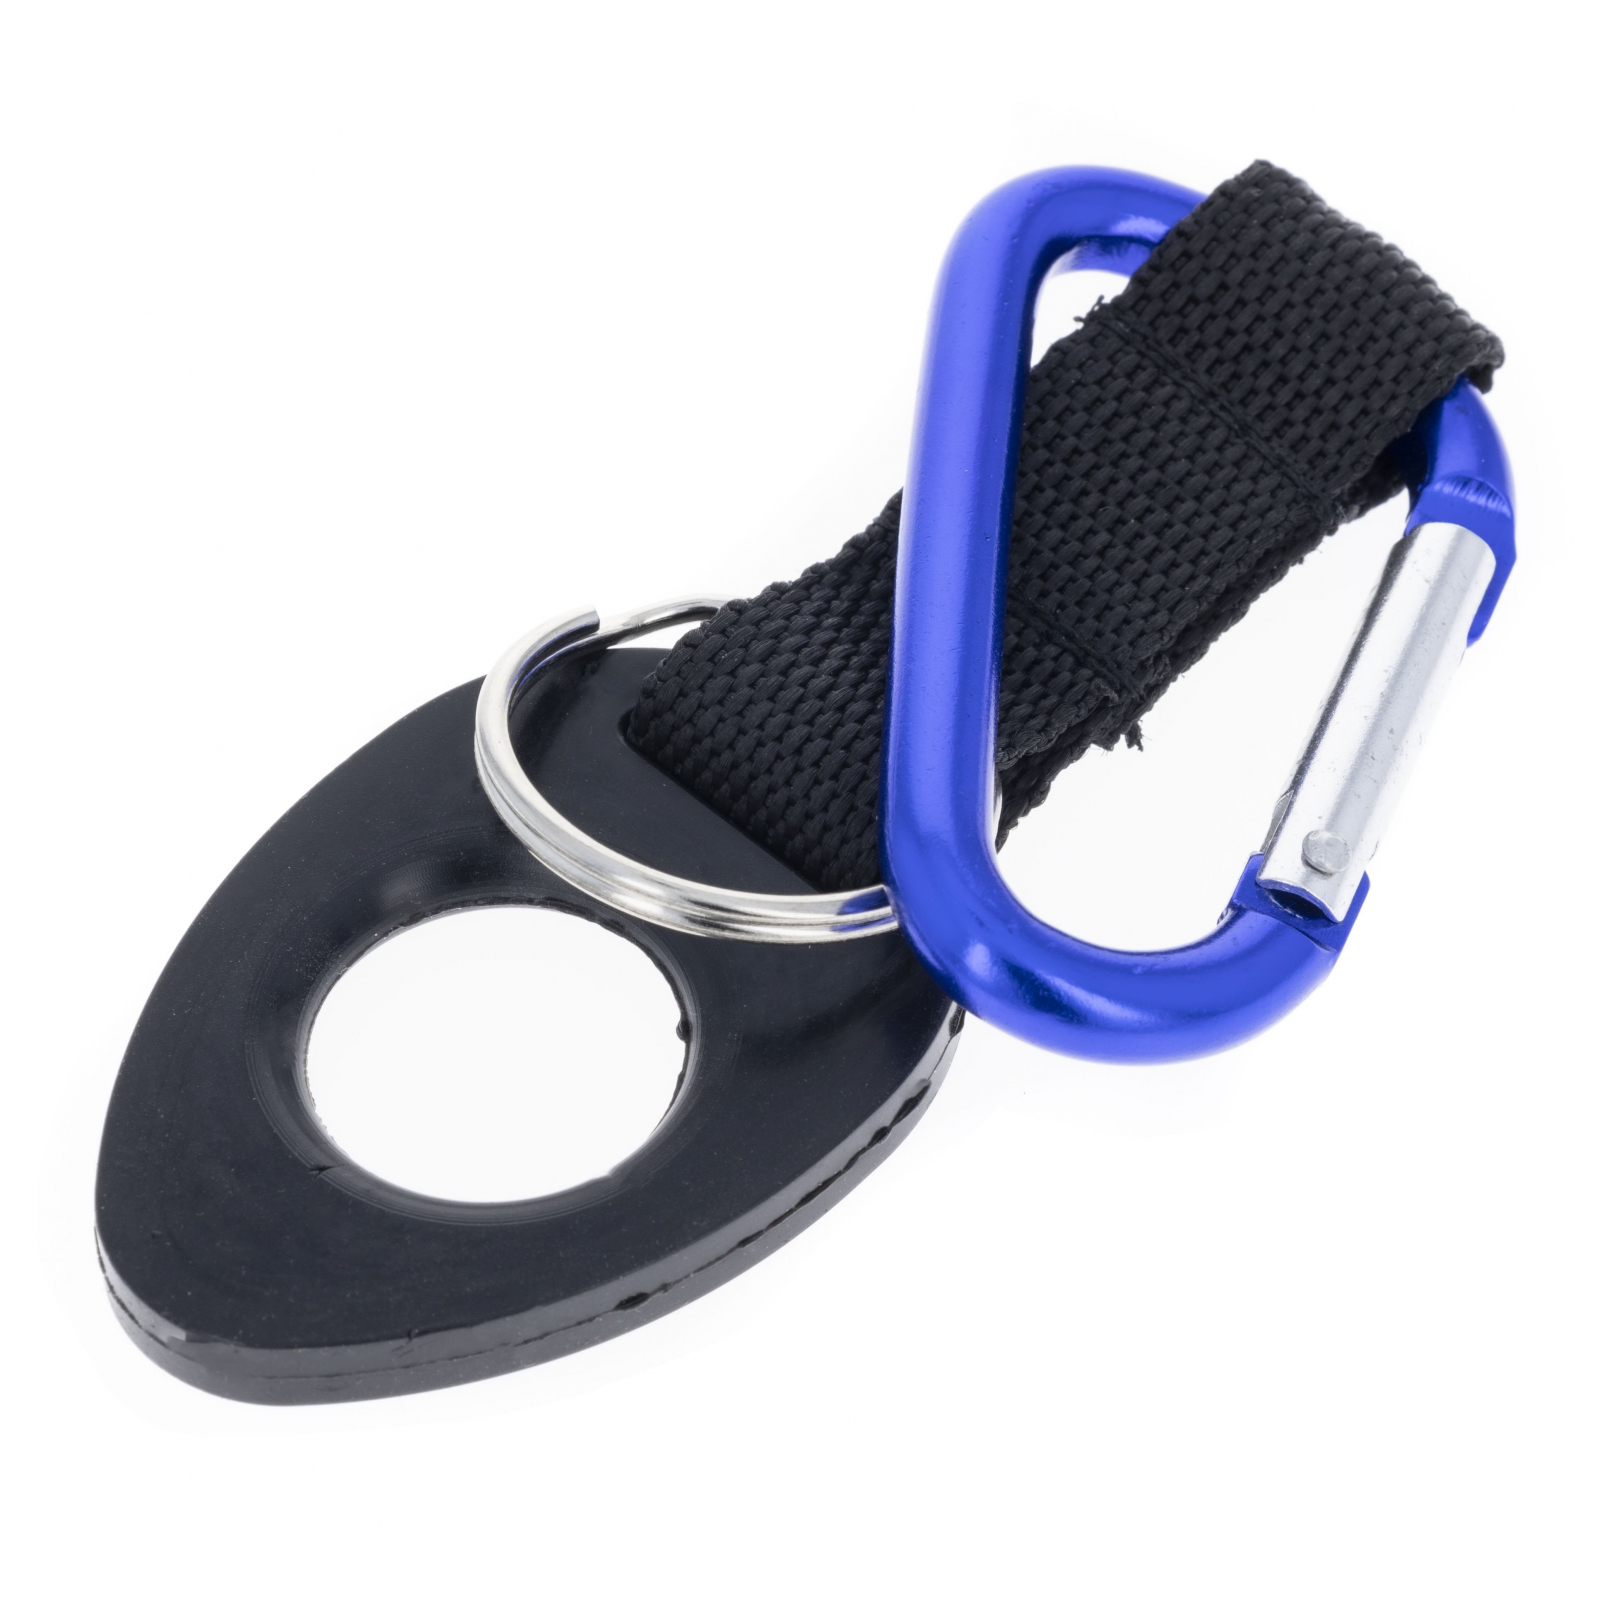 6mm Water Bottle Holder With Blue Aluminum Carabiner Attachment